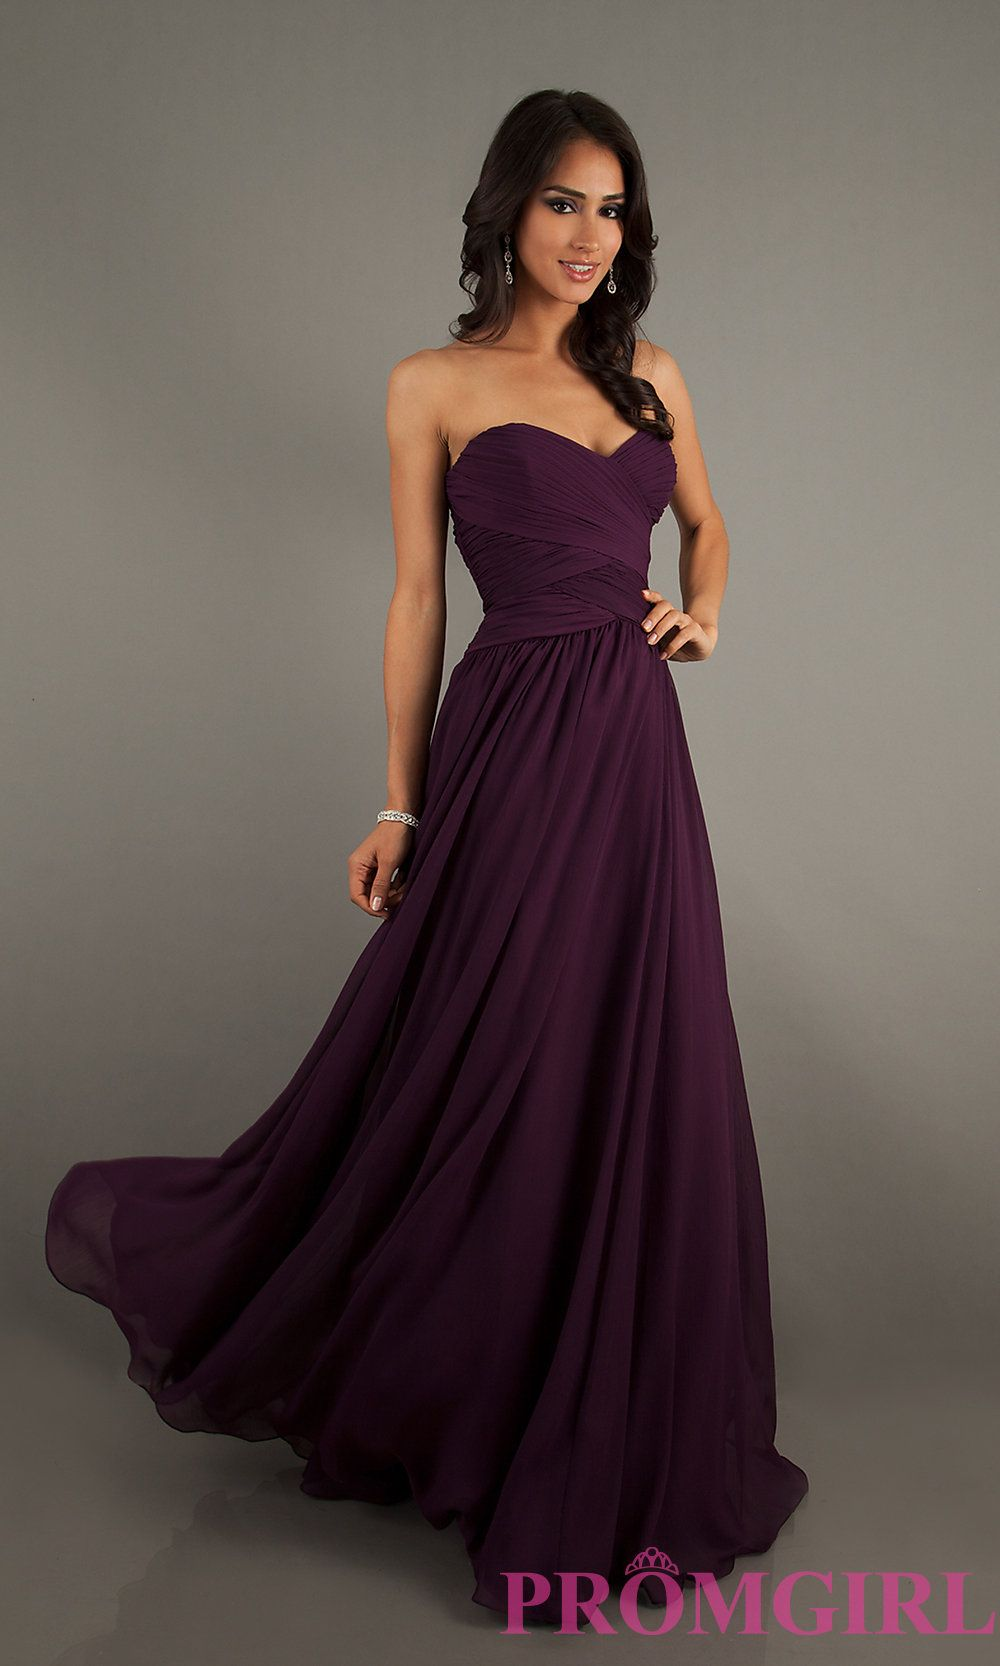 Strapless floor length gown by mori lee long prom dresses